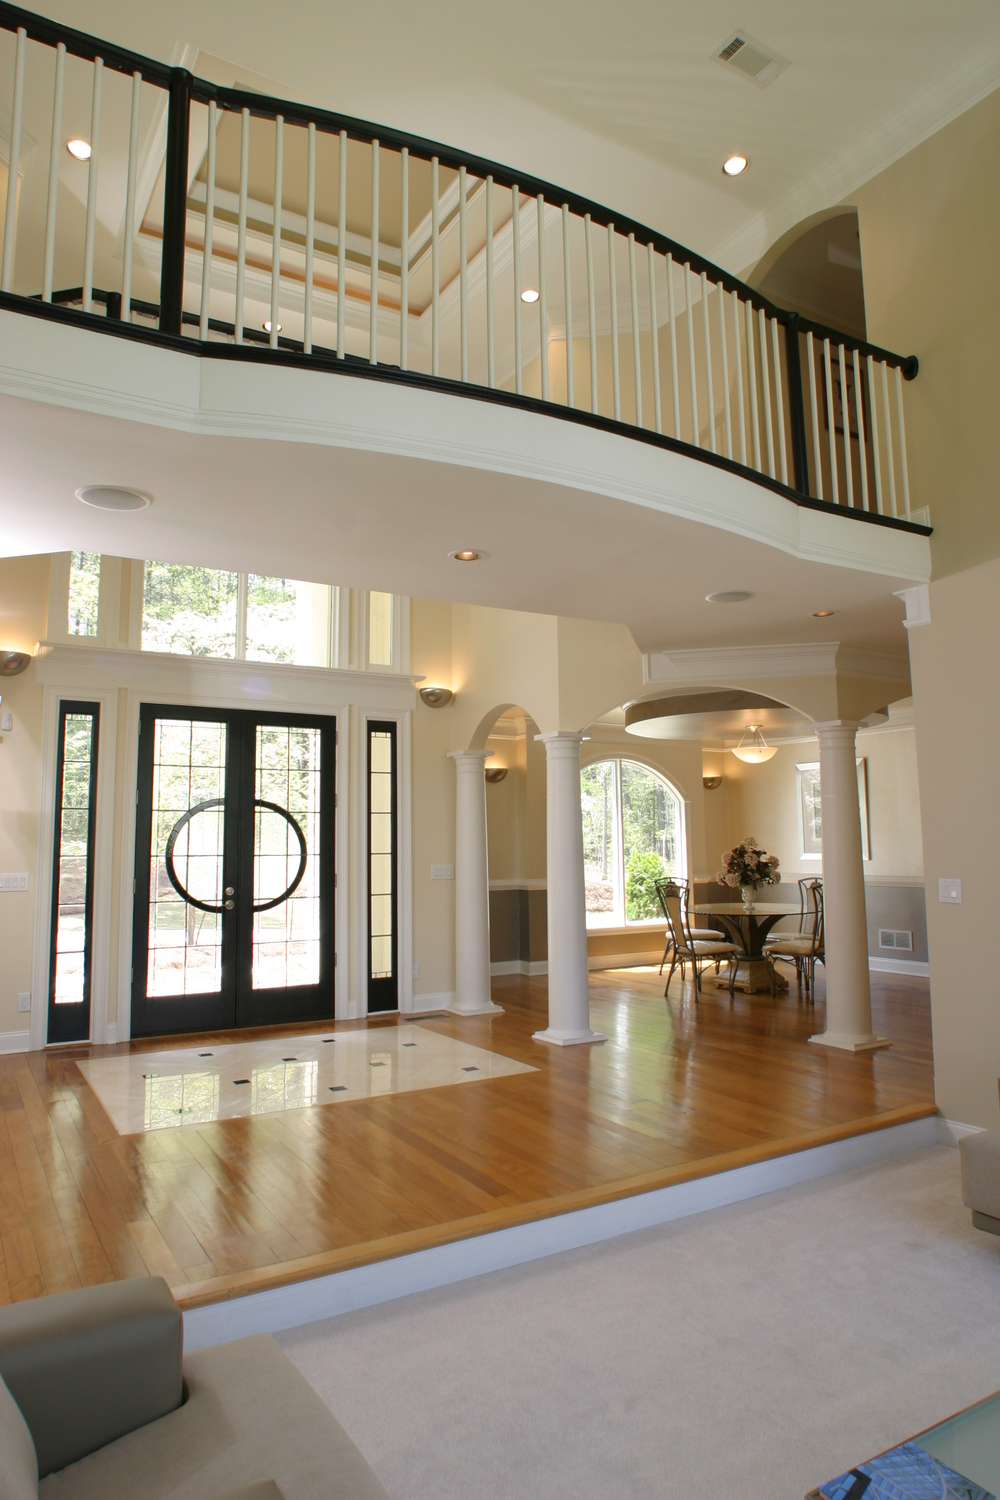 Entrance Foyer Circulation And Balcony In A House : Luxury mansion designs — boyehomeplans